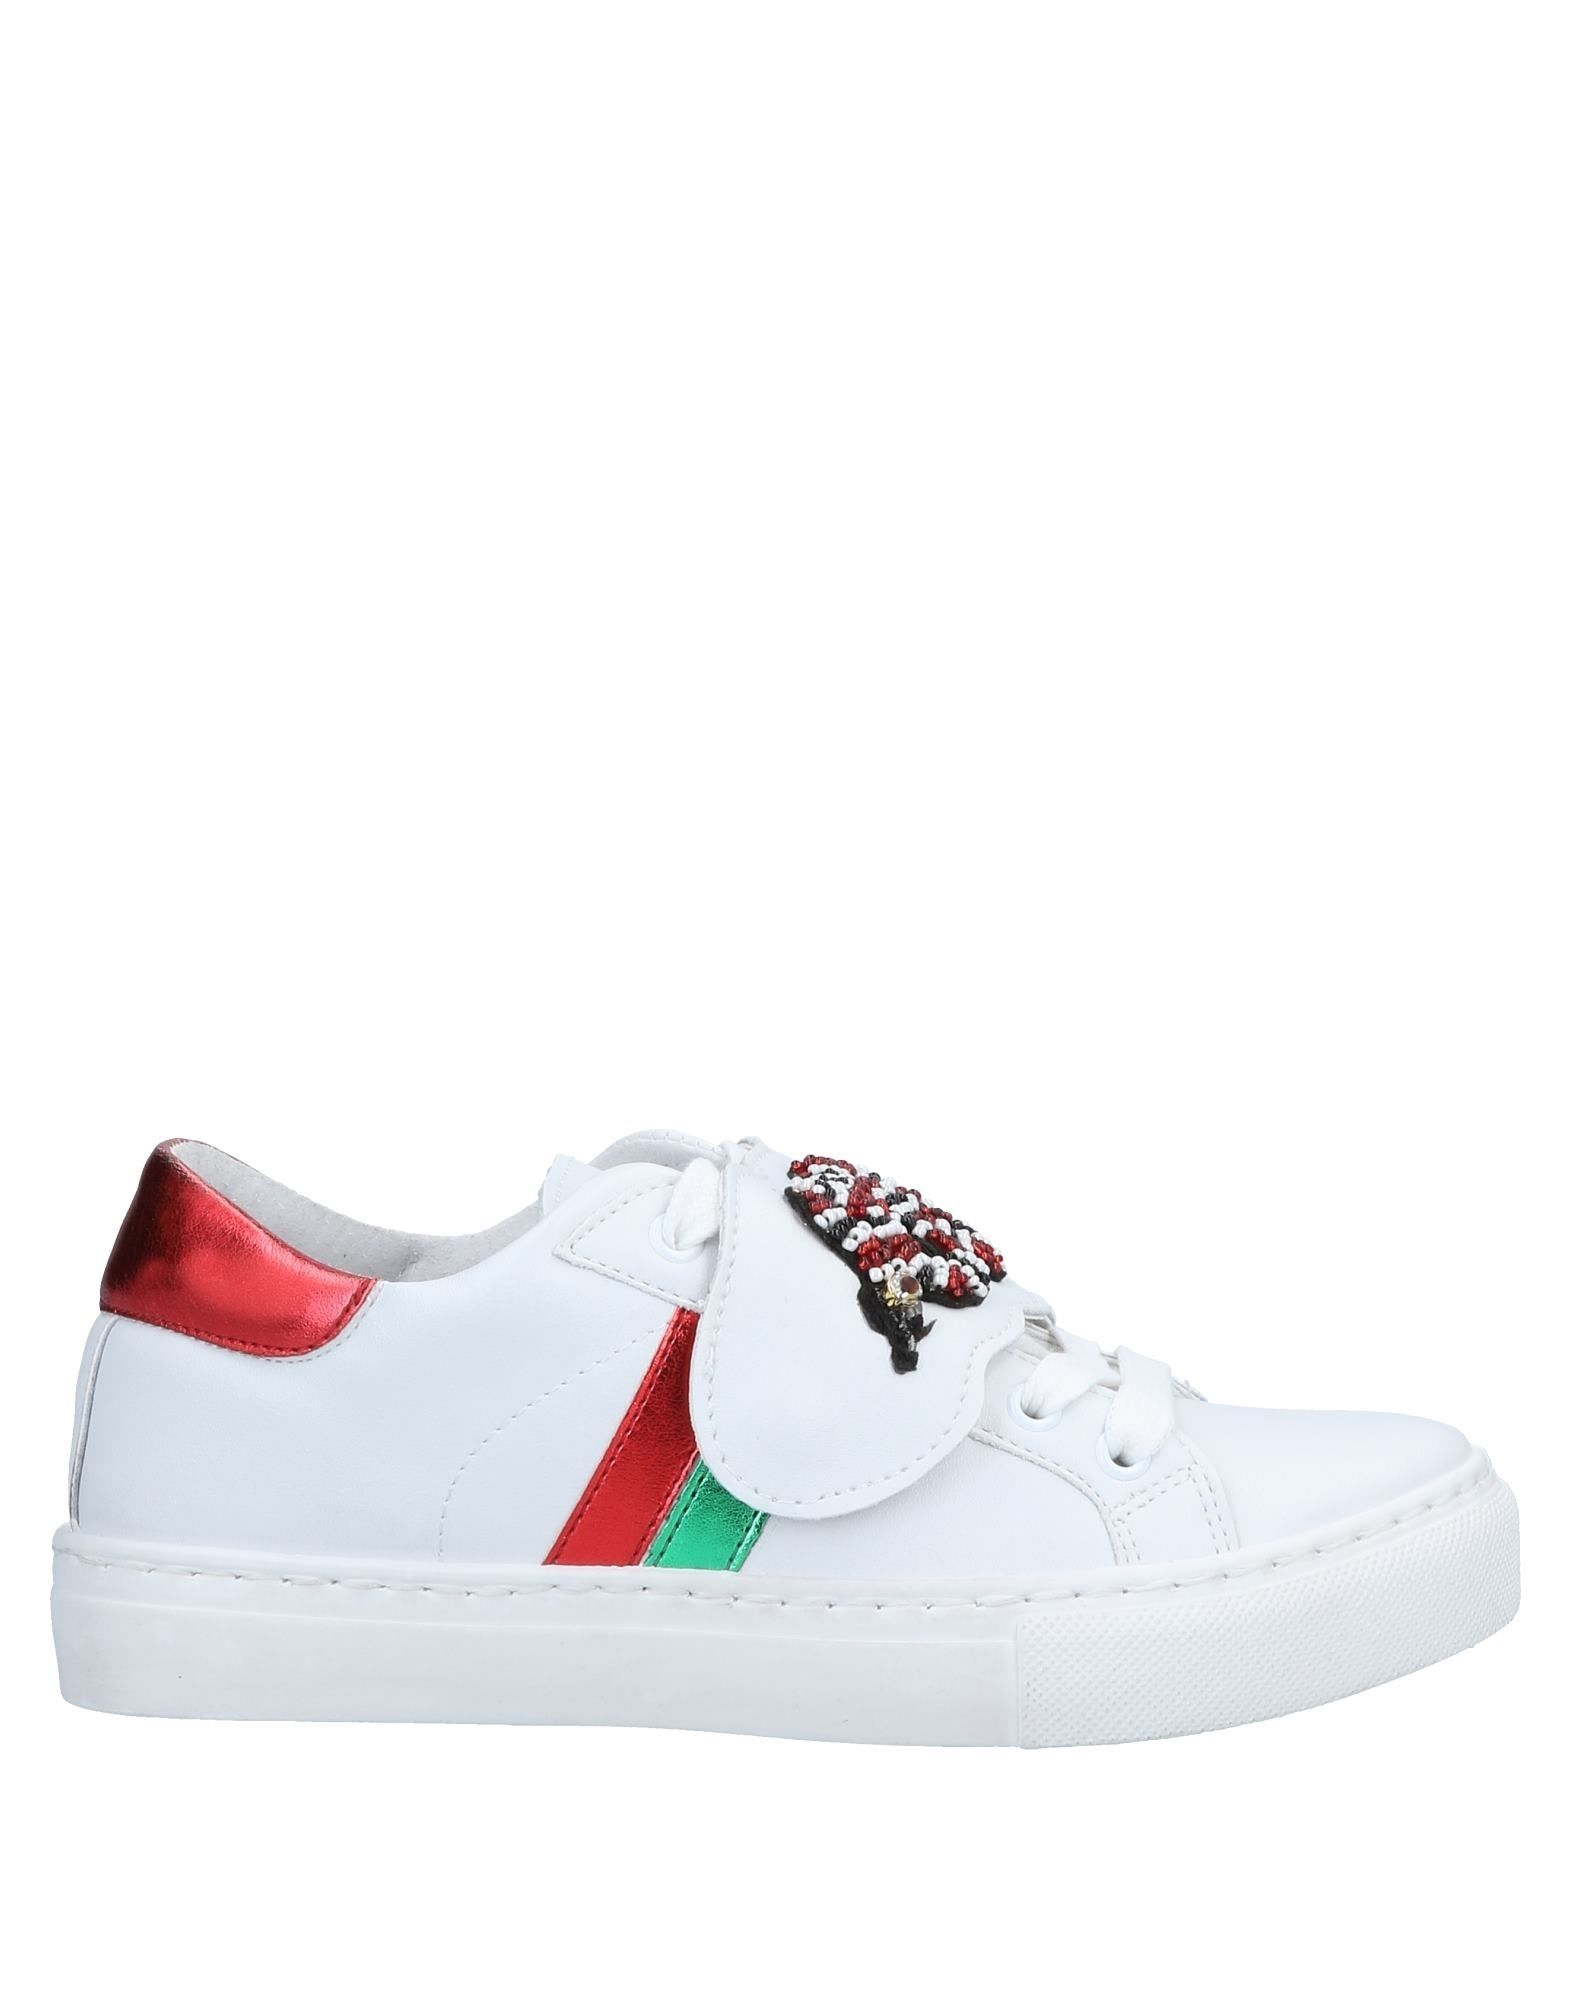 Ovye' By Women Cristina Lucchi Sneakers - Women By Ovye' By Cristina Lucchi Sneakers online on  United Kingdom - 11564839UC 812793